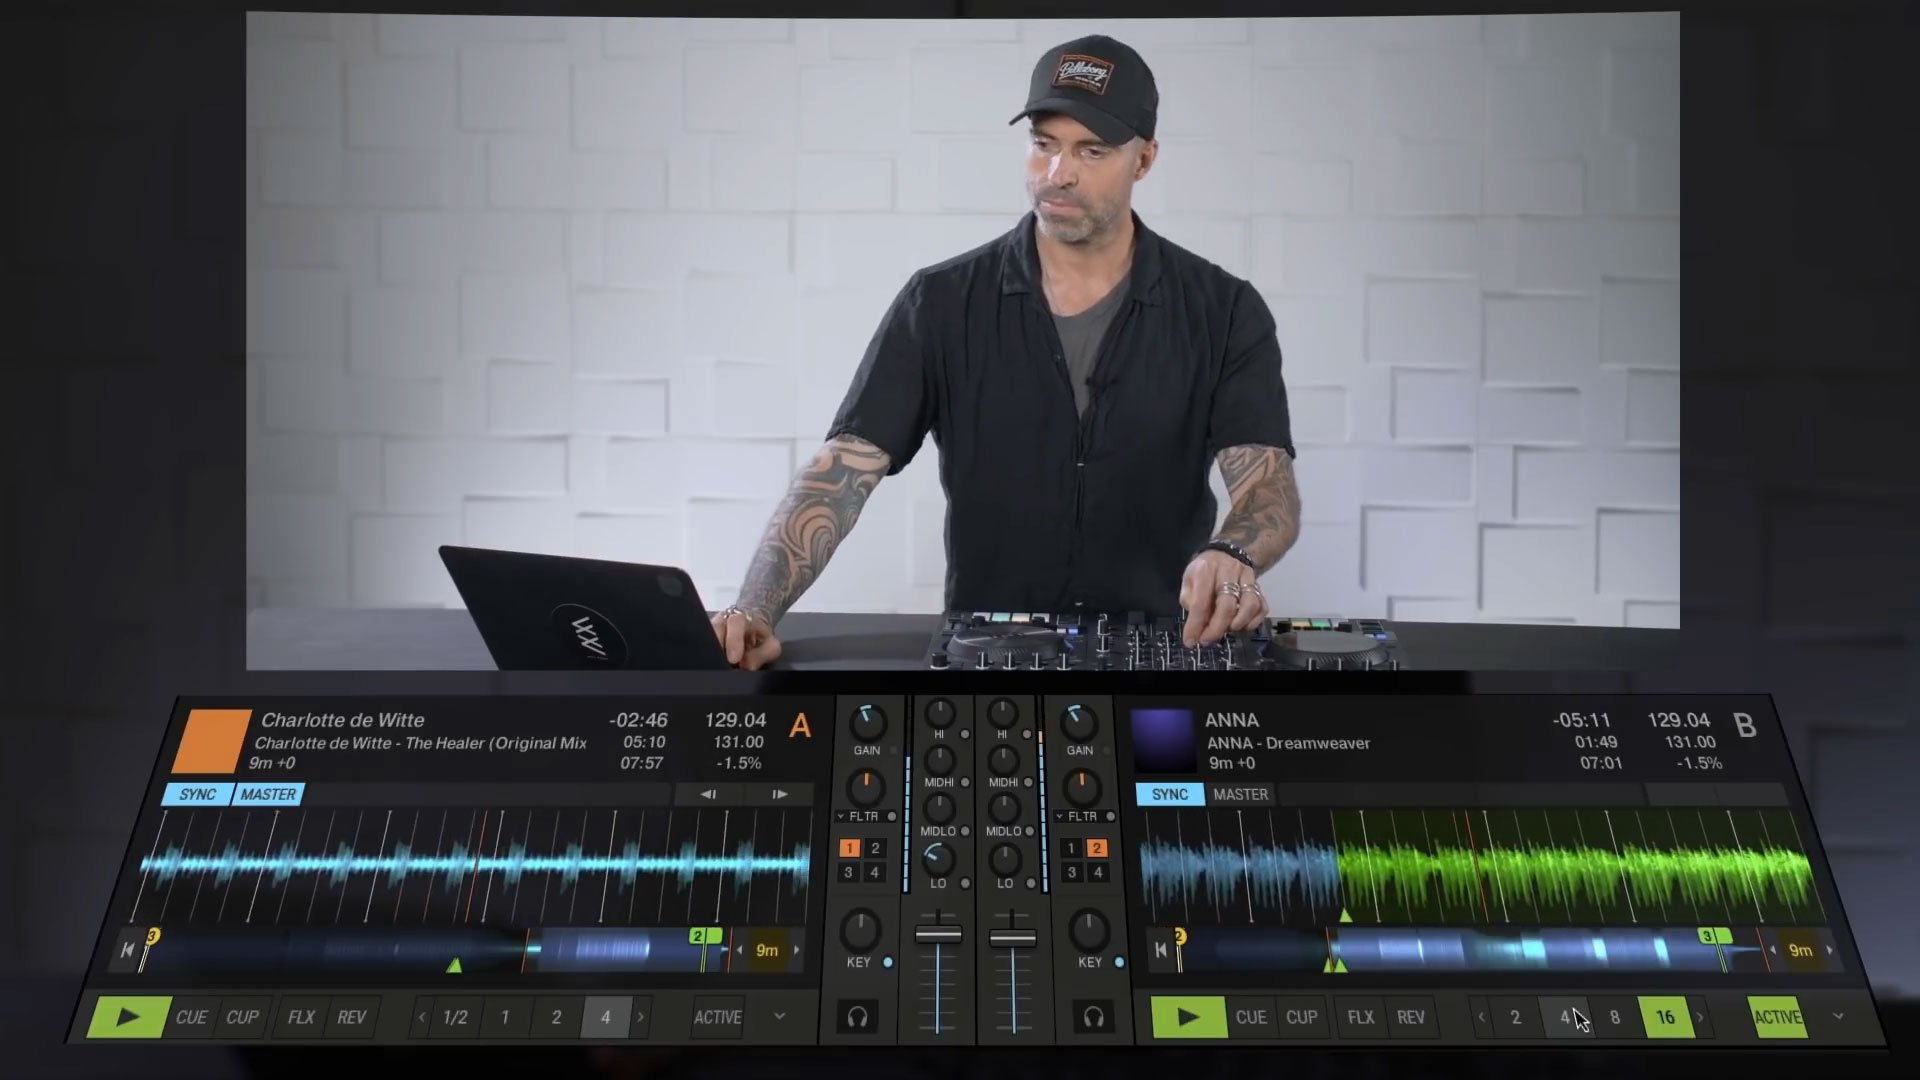 UPDATE: Traktor Pro 3 2 — focussing on harmonic mixing | DJWORX